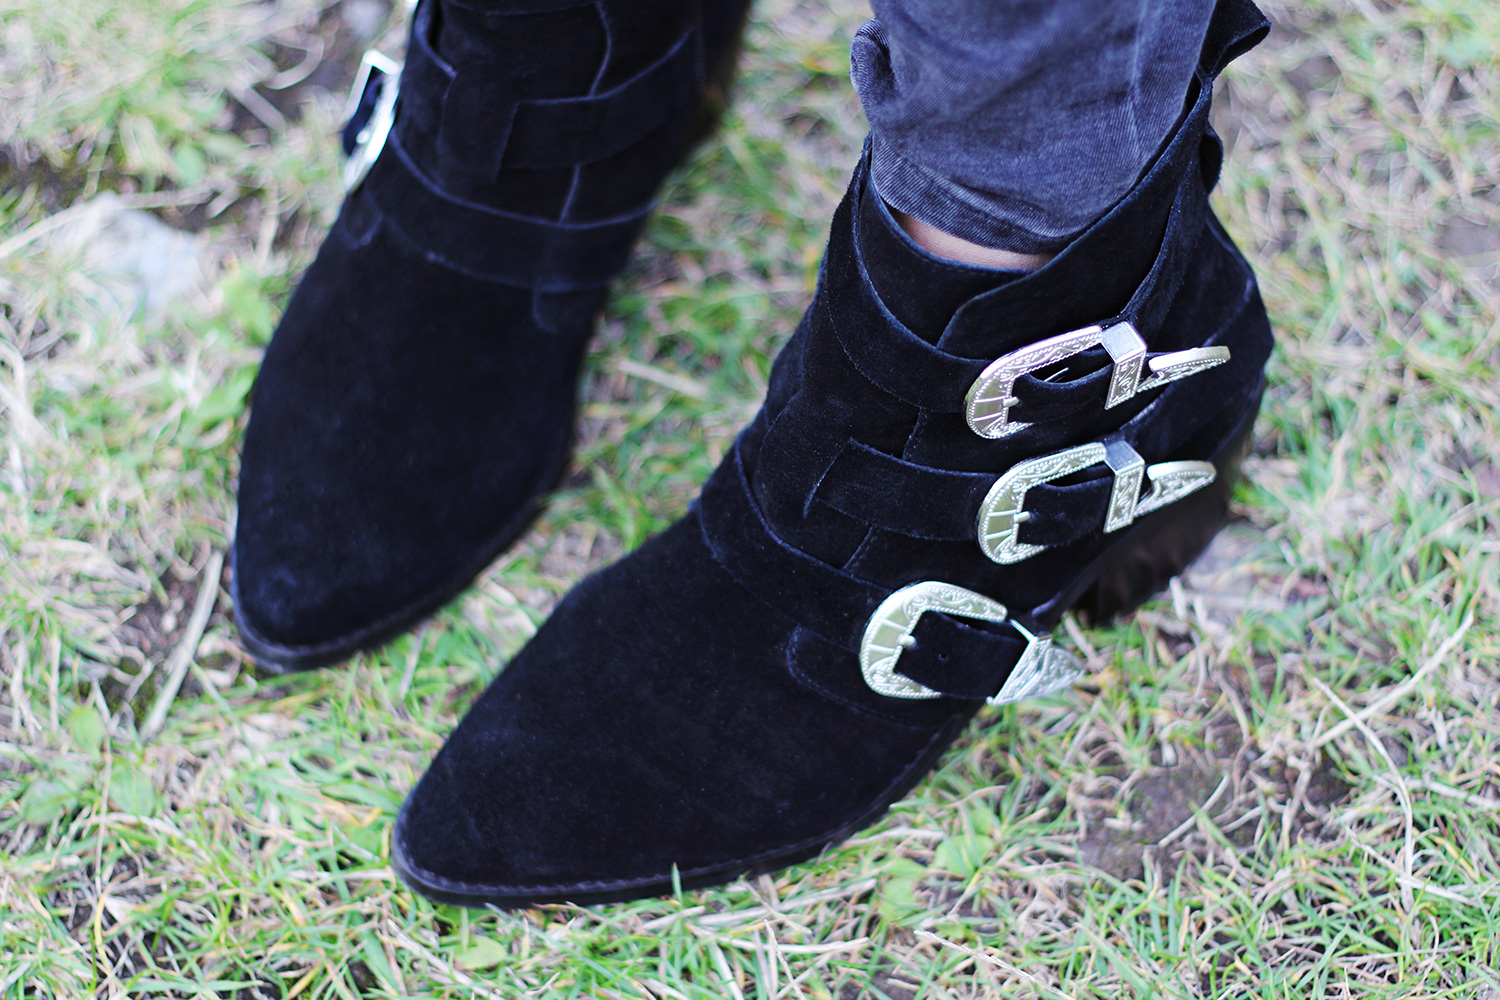 asos-buckle-boots@2x